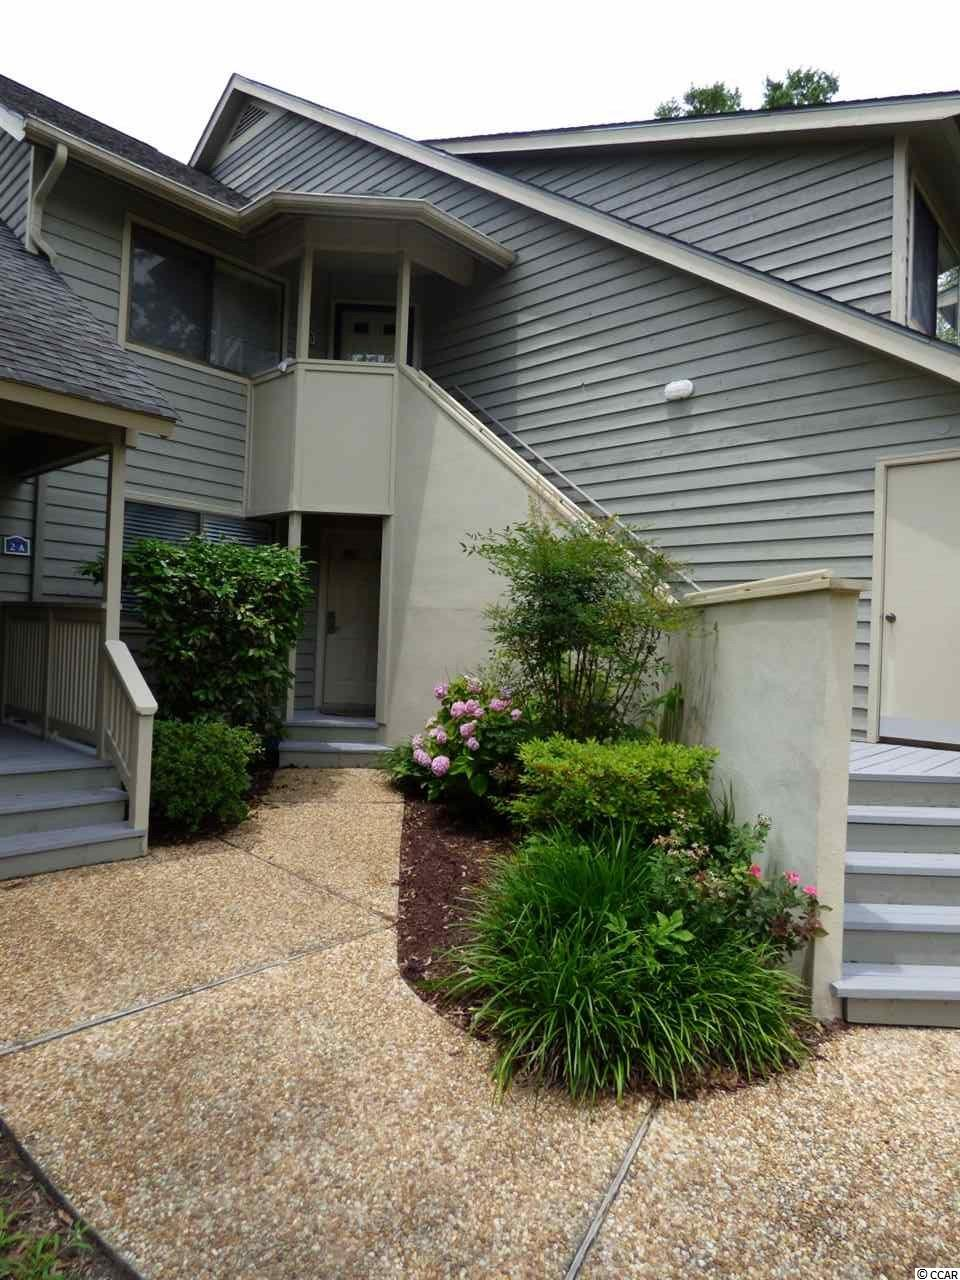 2 bedroom condo for sale at $189,000